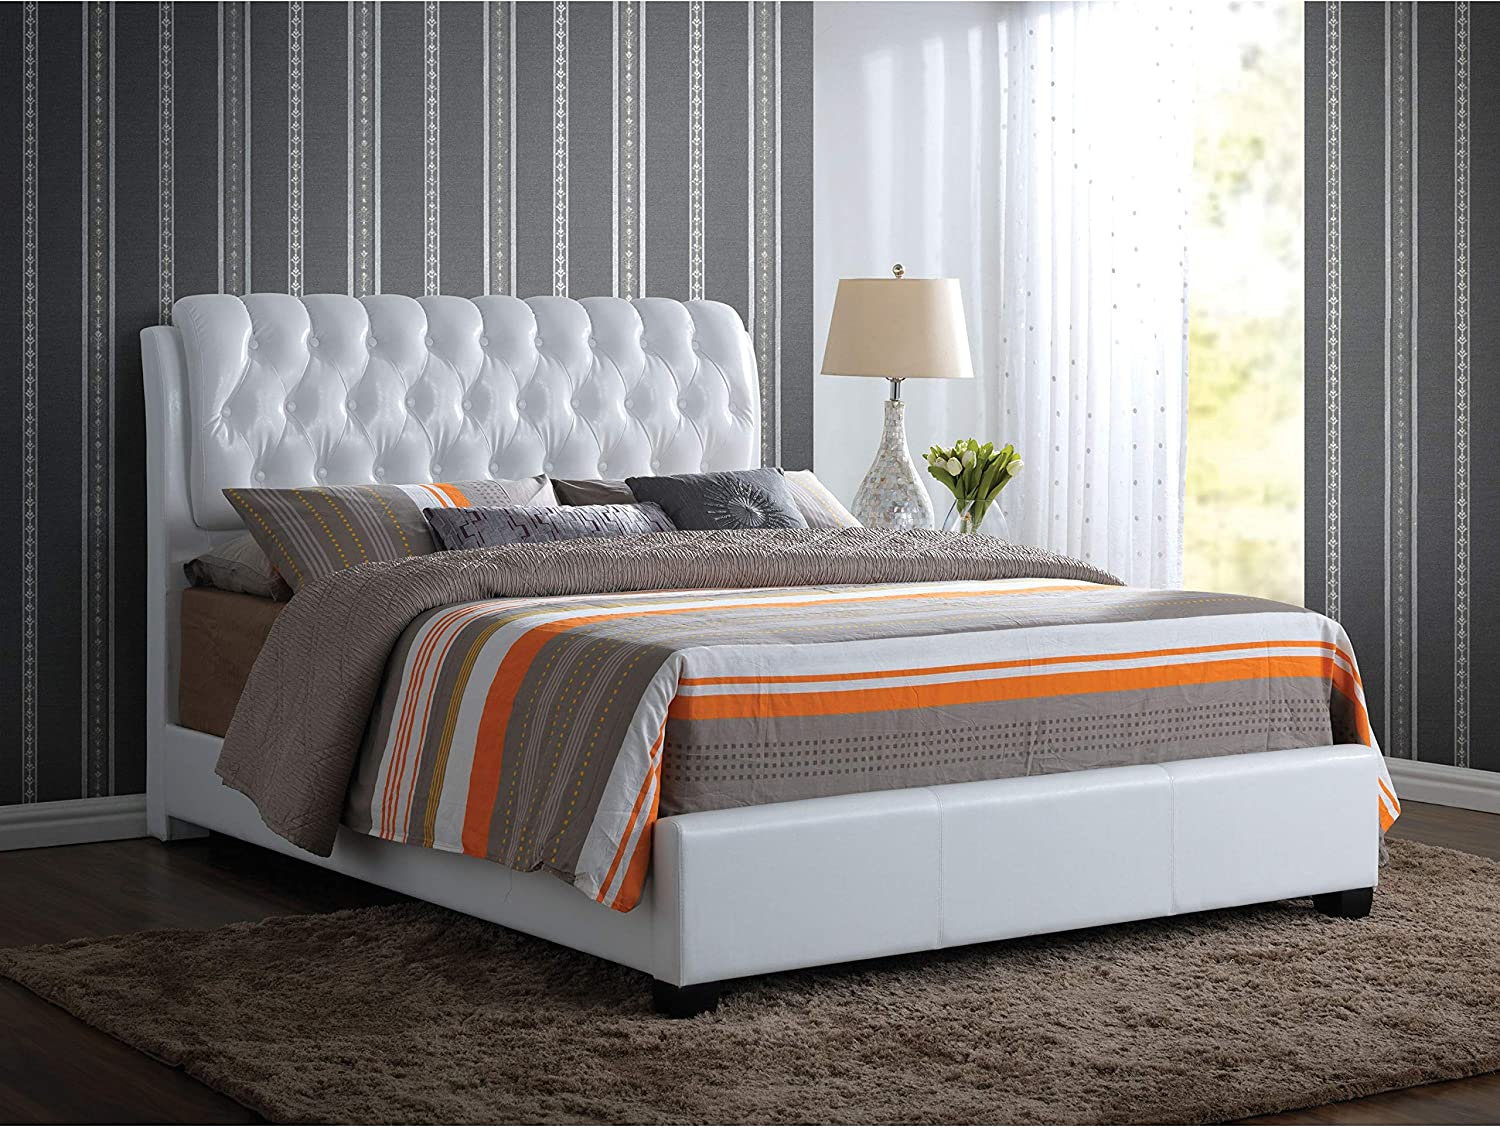 ACME Ireland II Eastern King Bed (Button Tufted) - - White PU